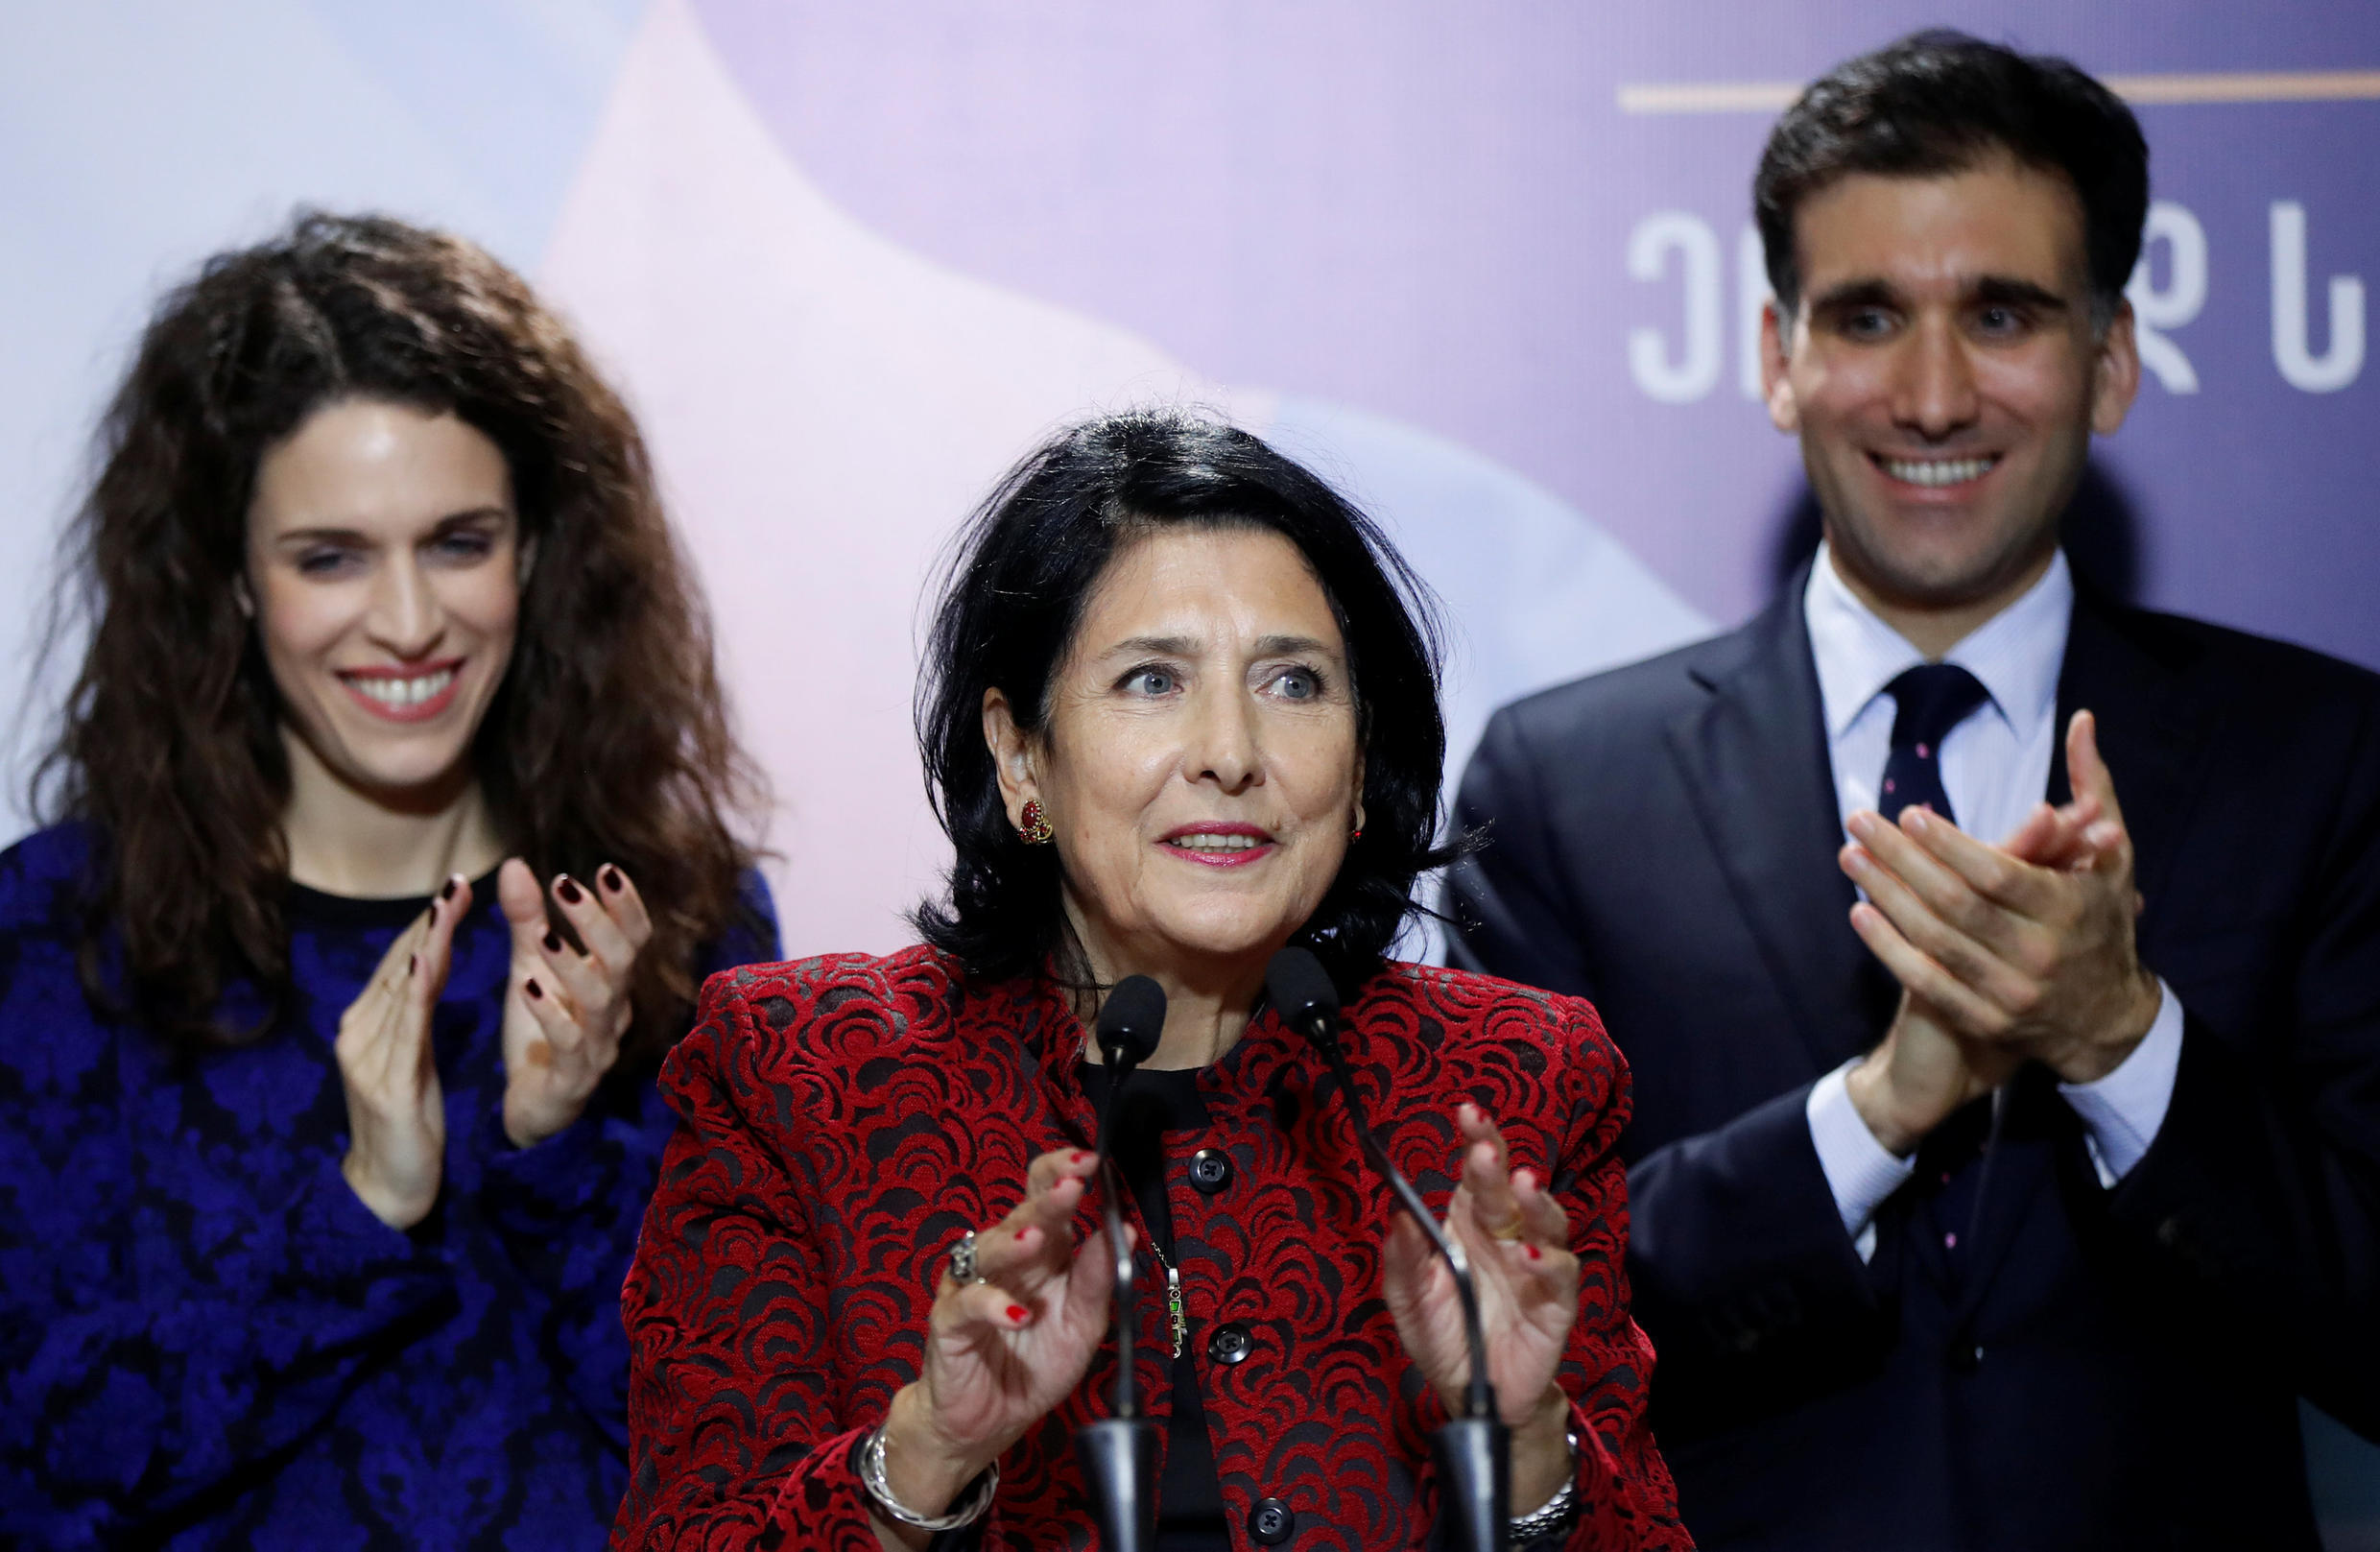 Salome Zurabishvili with her children at her headquarters in Tbilisi after the results were announced